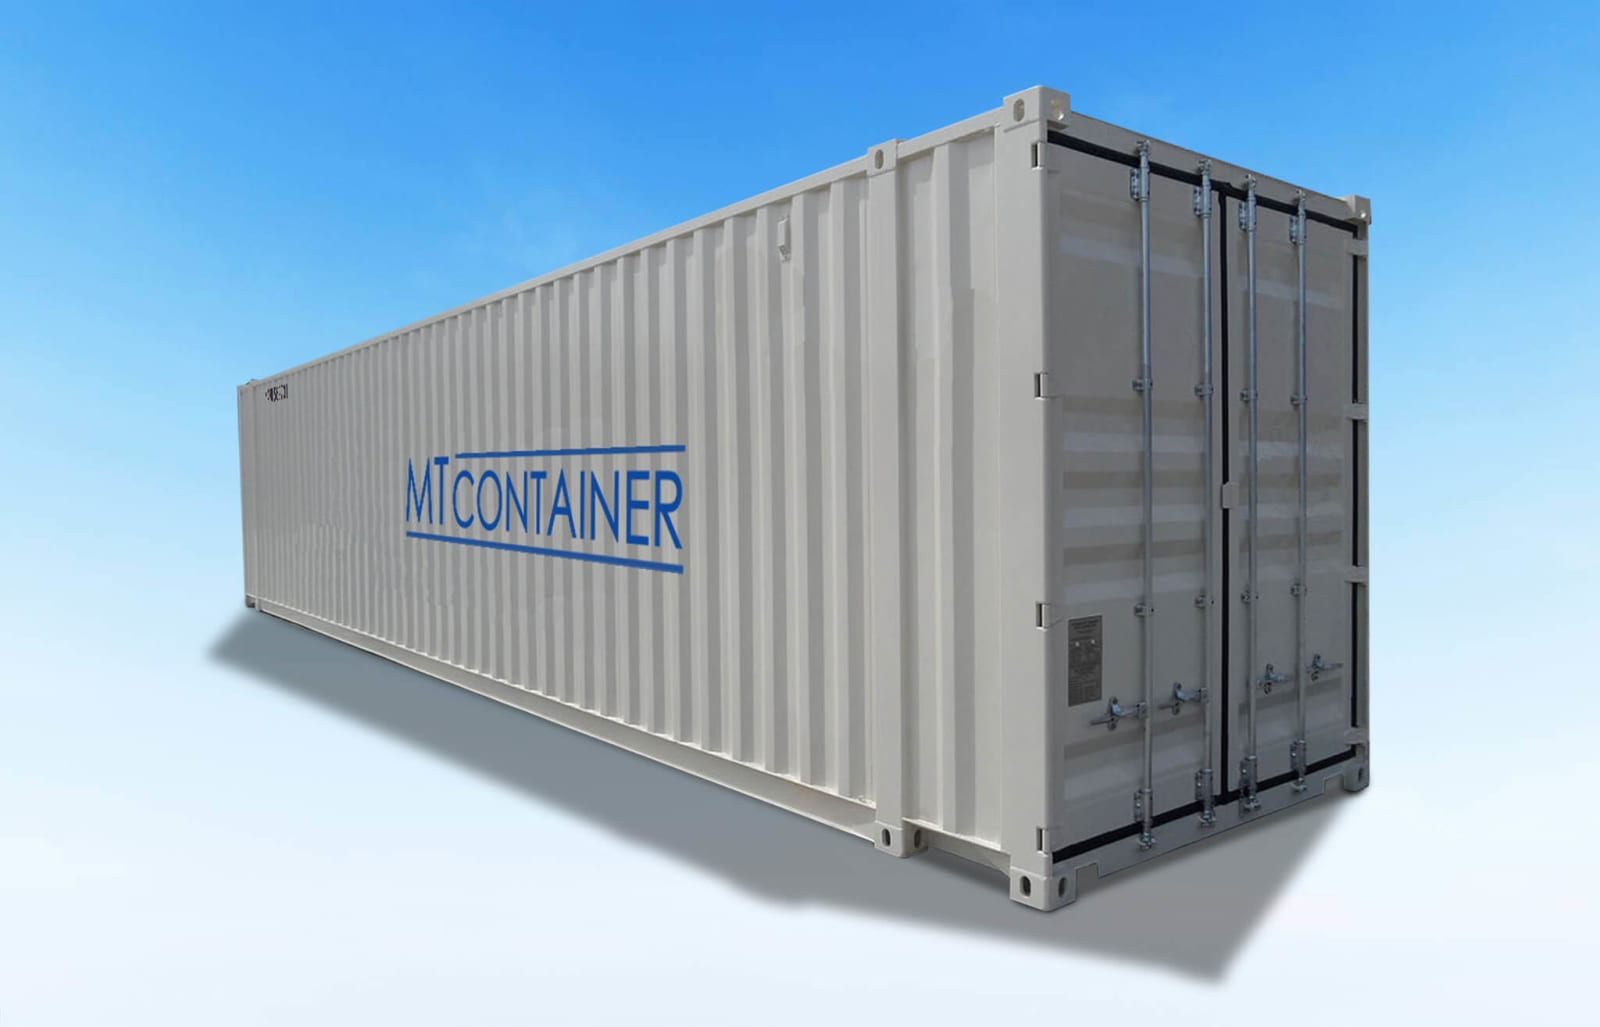 iso seecontainer als allrounder mt container gmbh hamburg. Black Bedroom Furniture Sets. Home Design Ideas